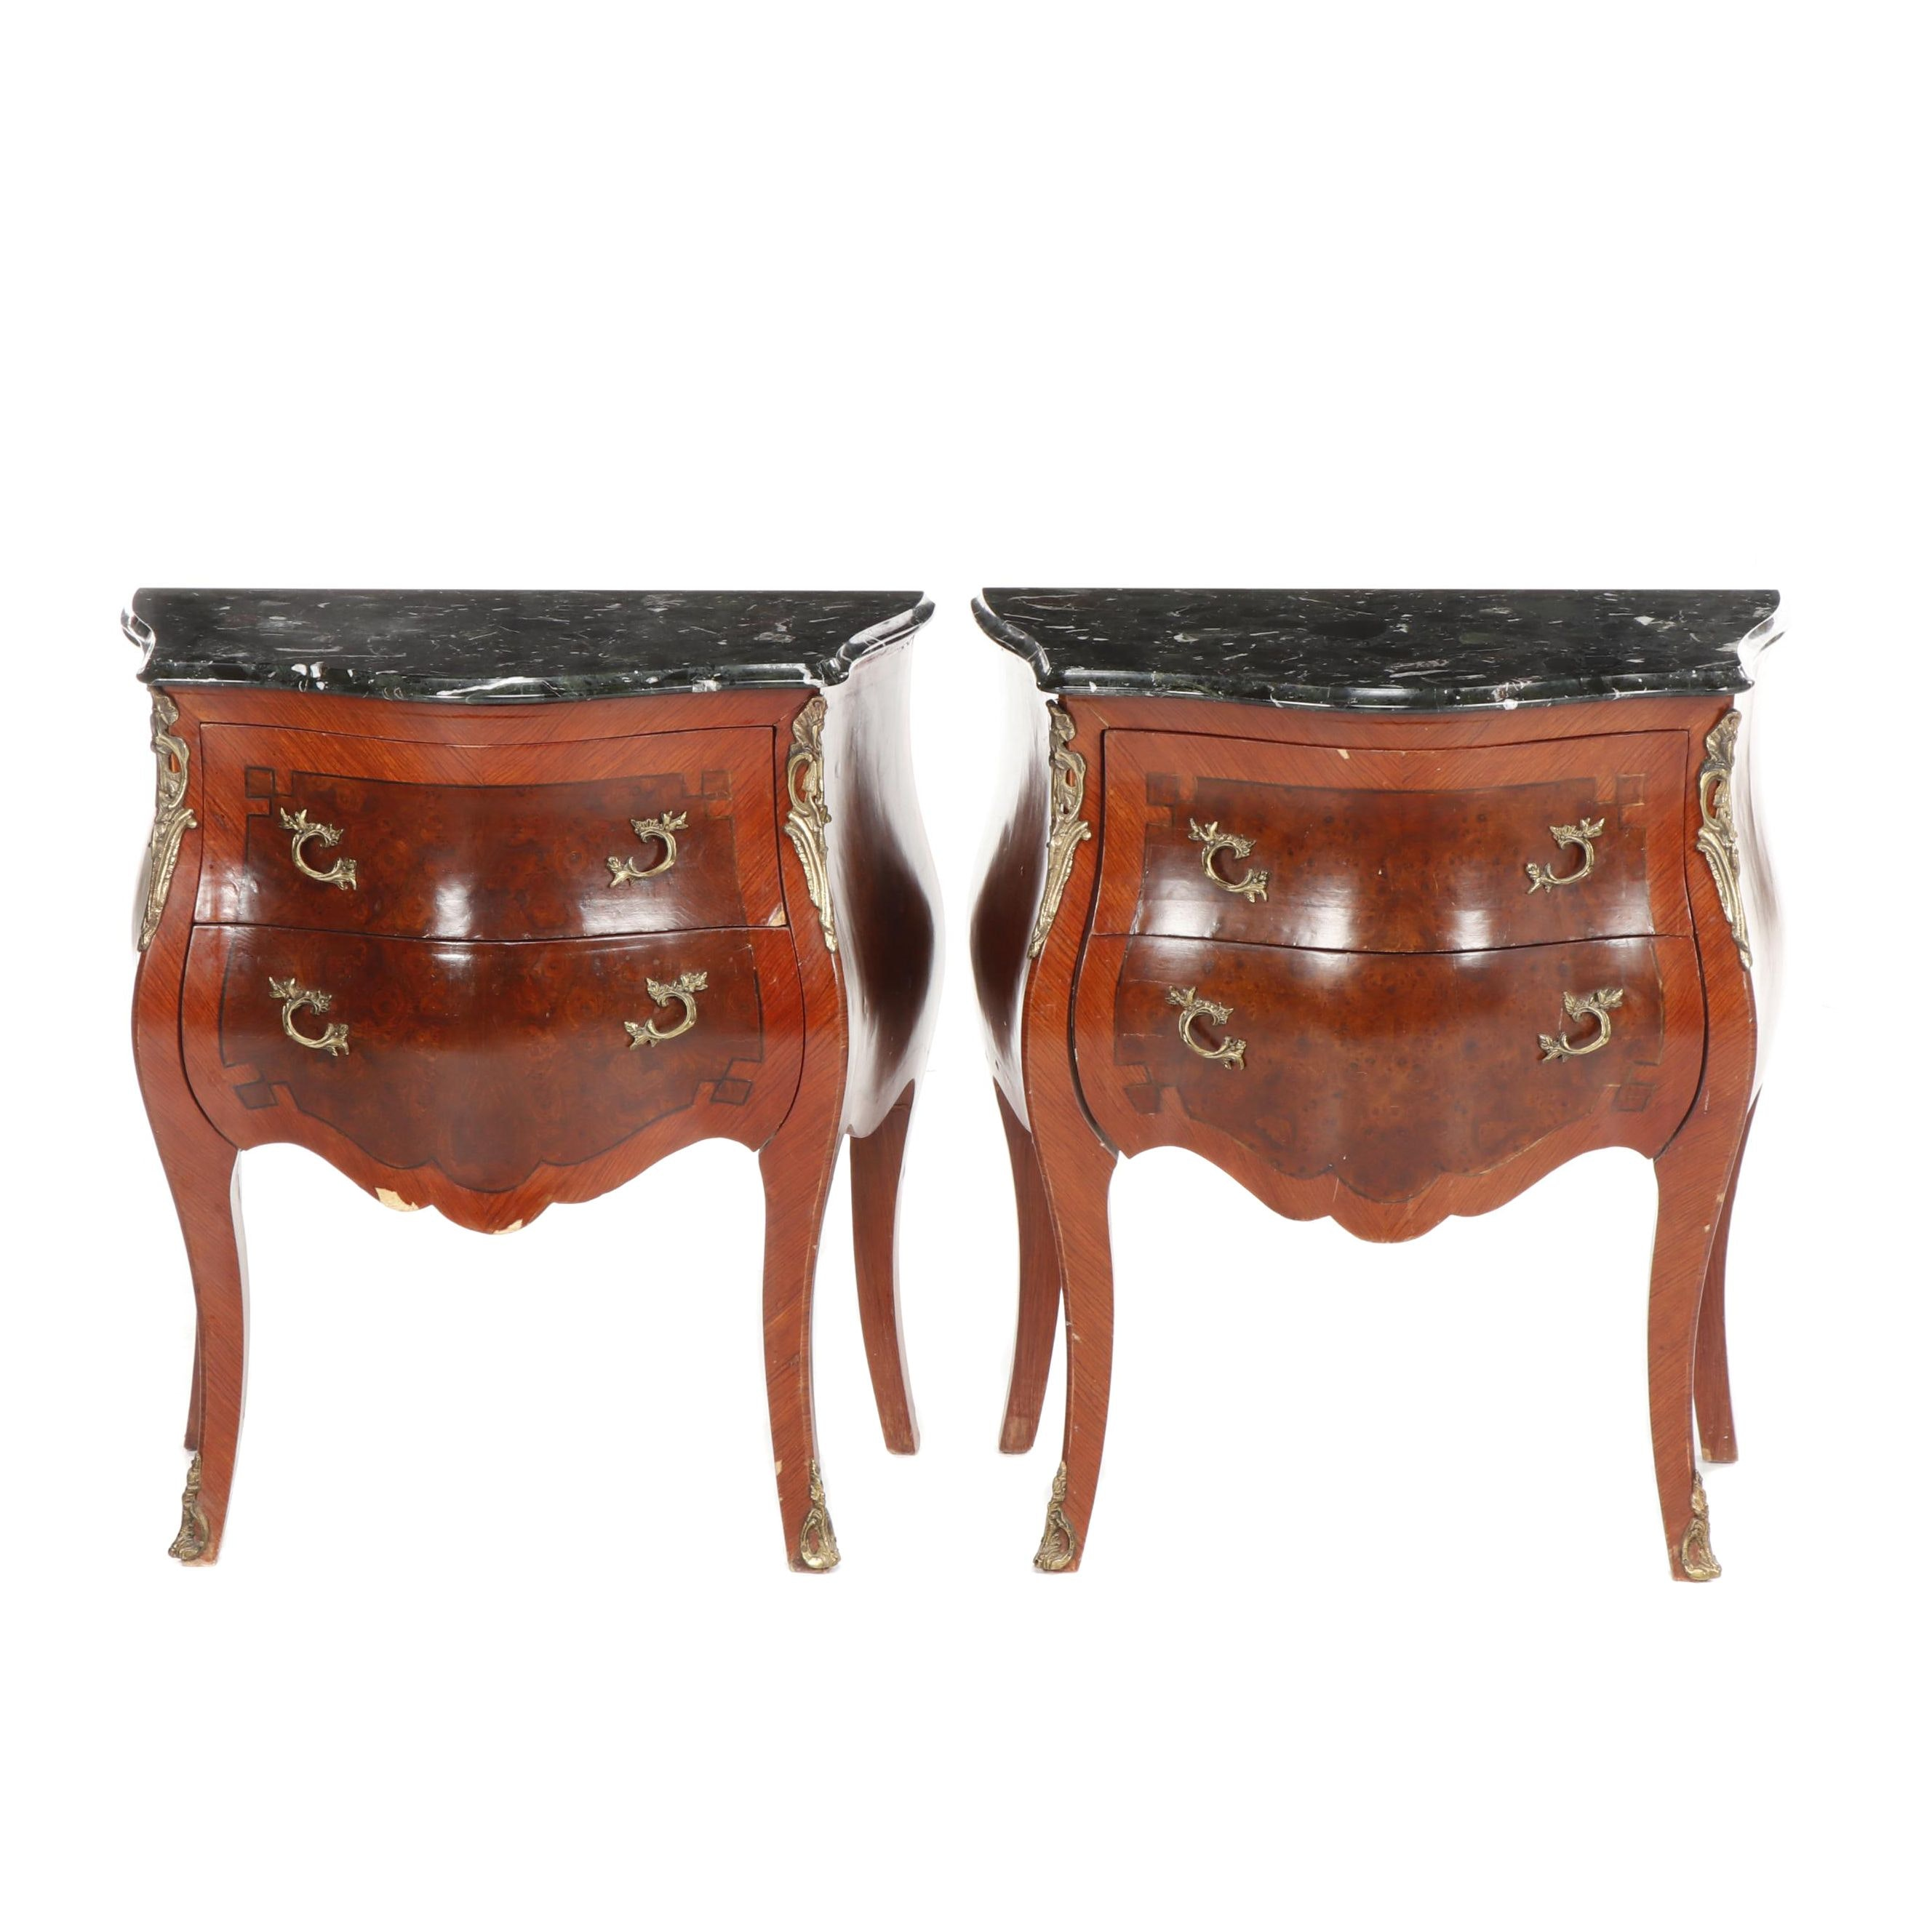 Louis XV Style Bombé Marble Top Mahogany & Walnut Burl Veneered End Tables, 20th